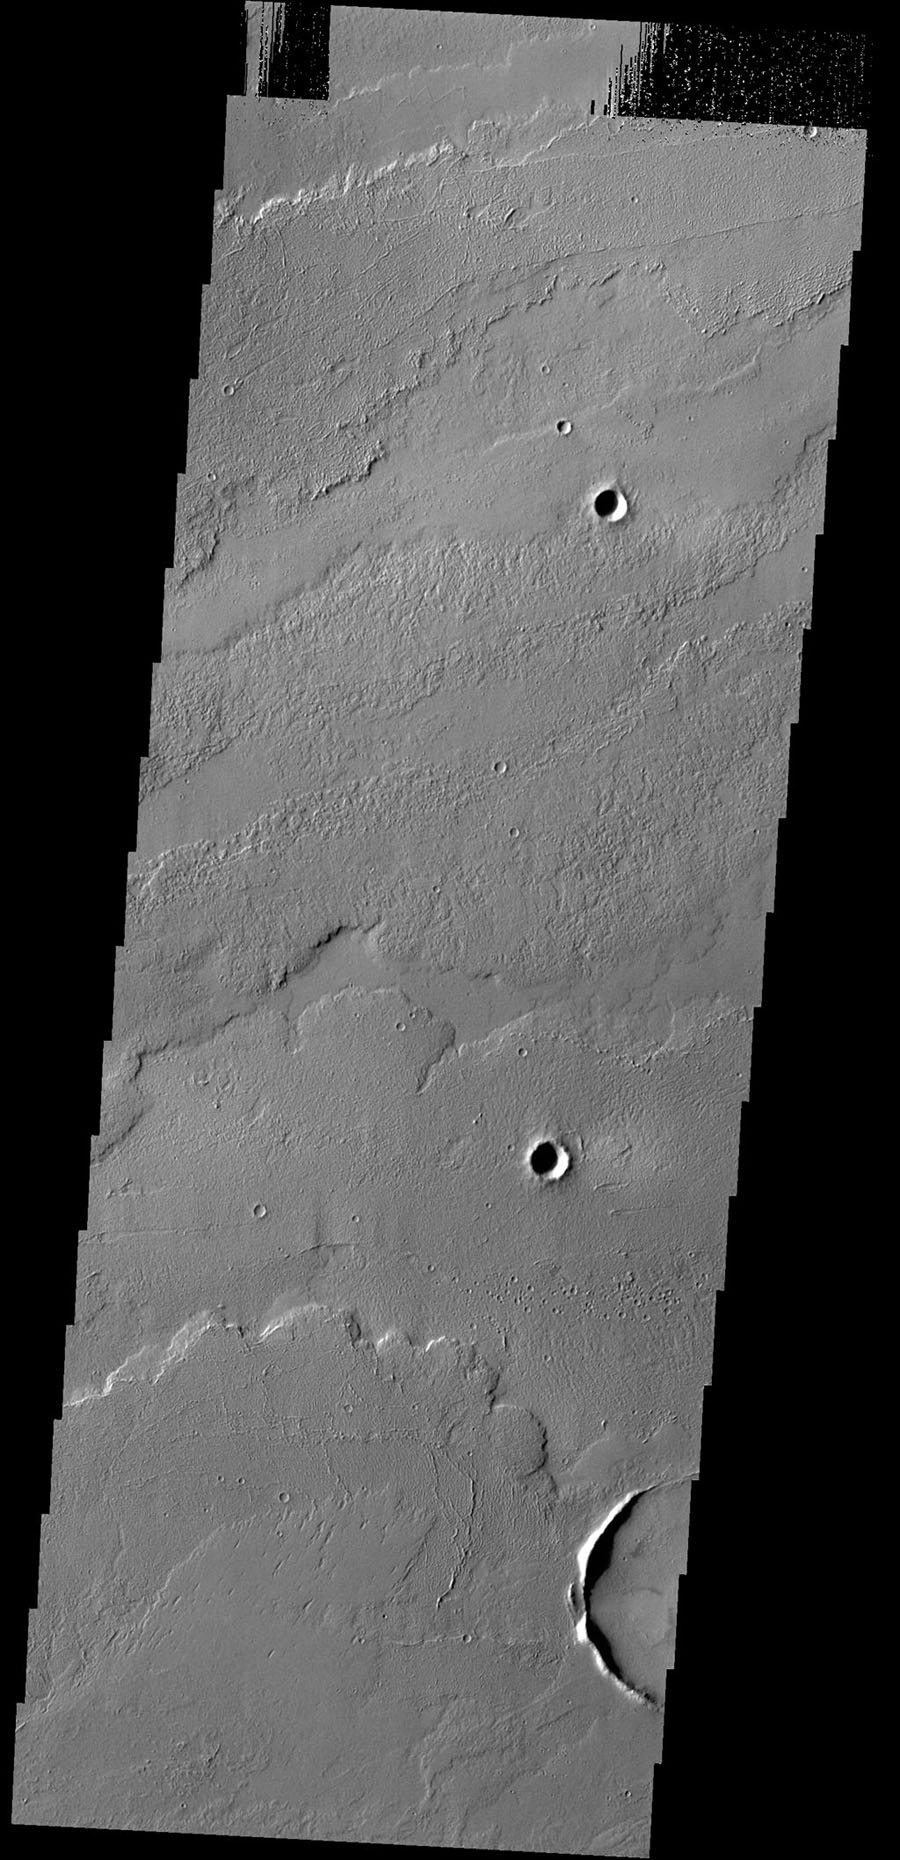 This image captured by NASA's 2001 Mars Odyssey spacecraft shows some of the lava flows located east of the large Tharsis volcanoes.